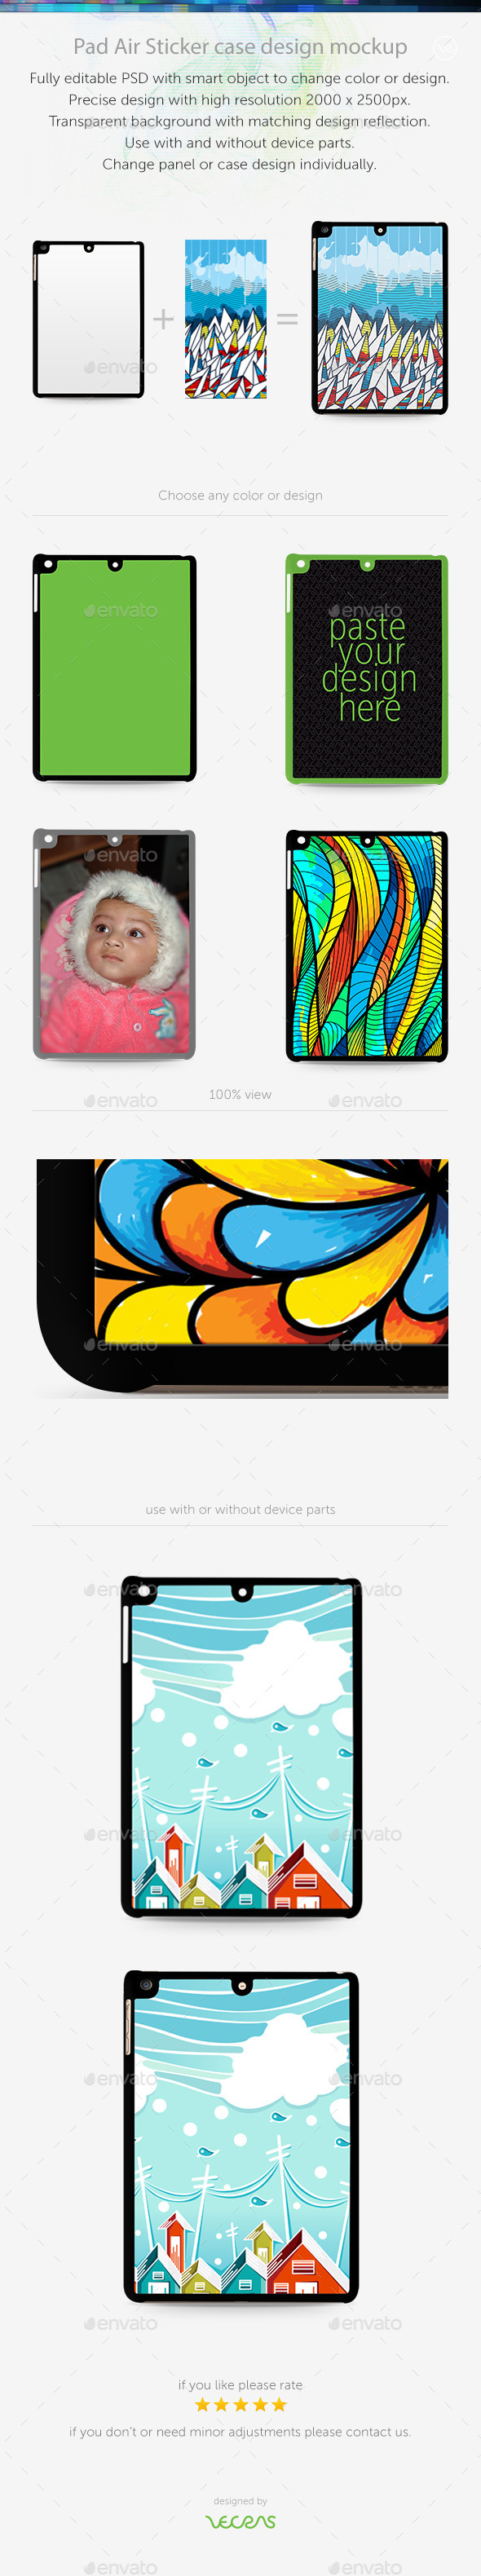 GraphicRiver Pad Air Sticker Case Design Mockup 10401802